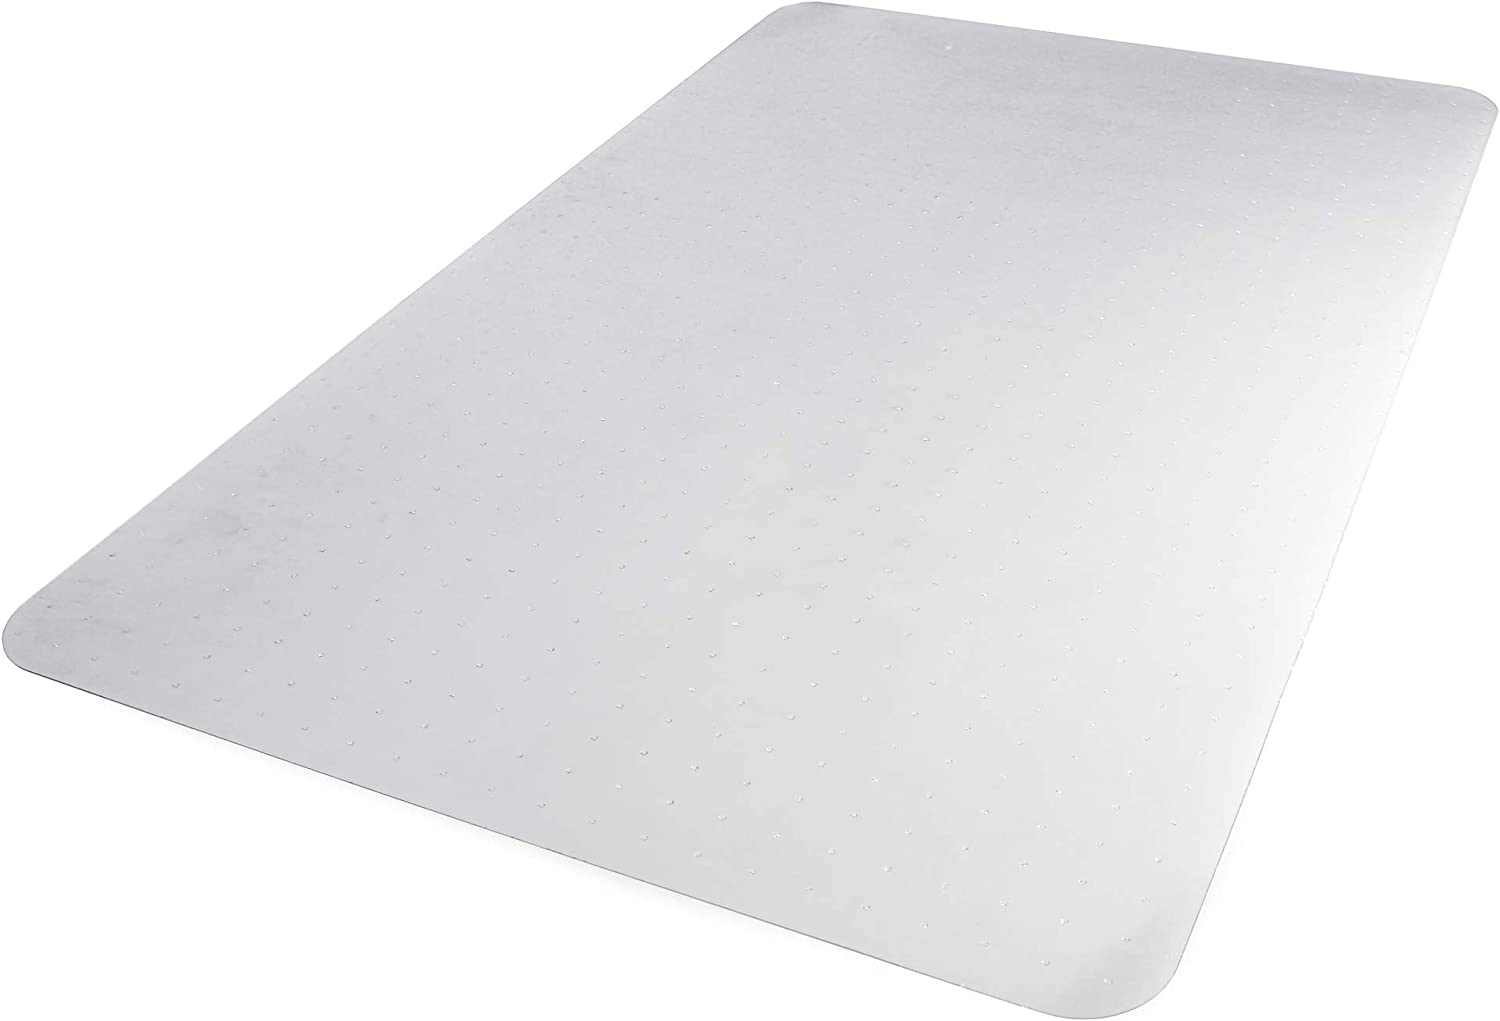 "AmazonBasics Polycarbonate Office Carpet Chair Mat, for Low and Medium Pile Carpets, 47"" x 51"""